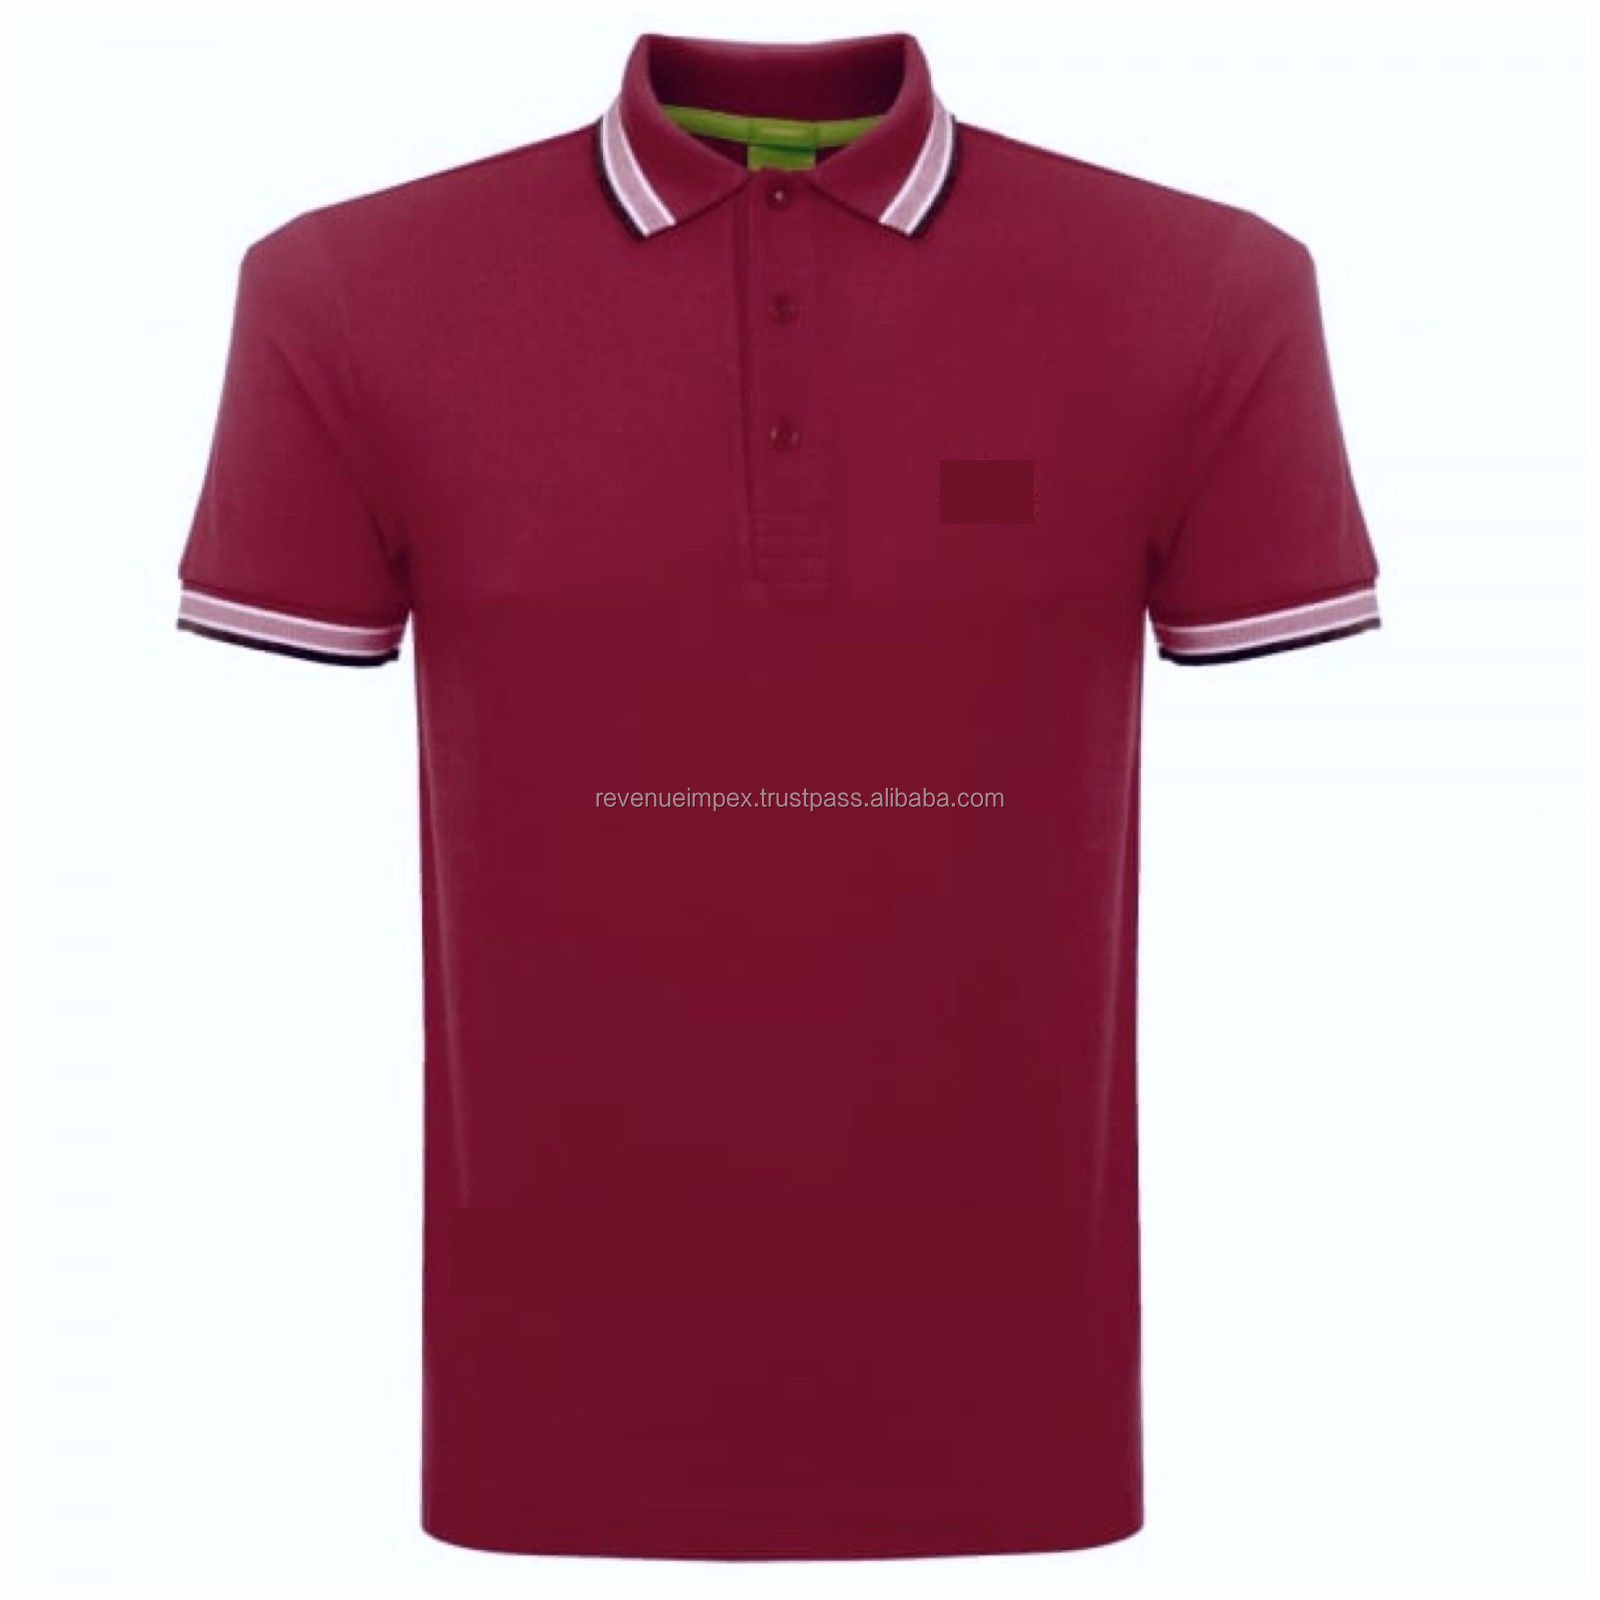 100 Polyester Polo Shirts Wholesale Buy Mens 100 Polyester Polo